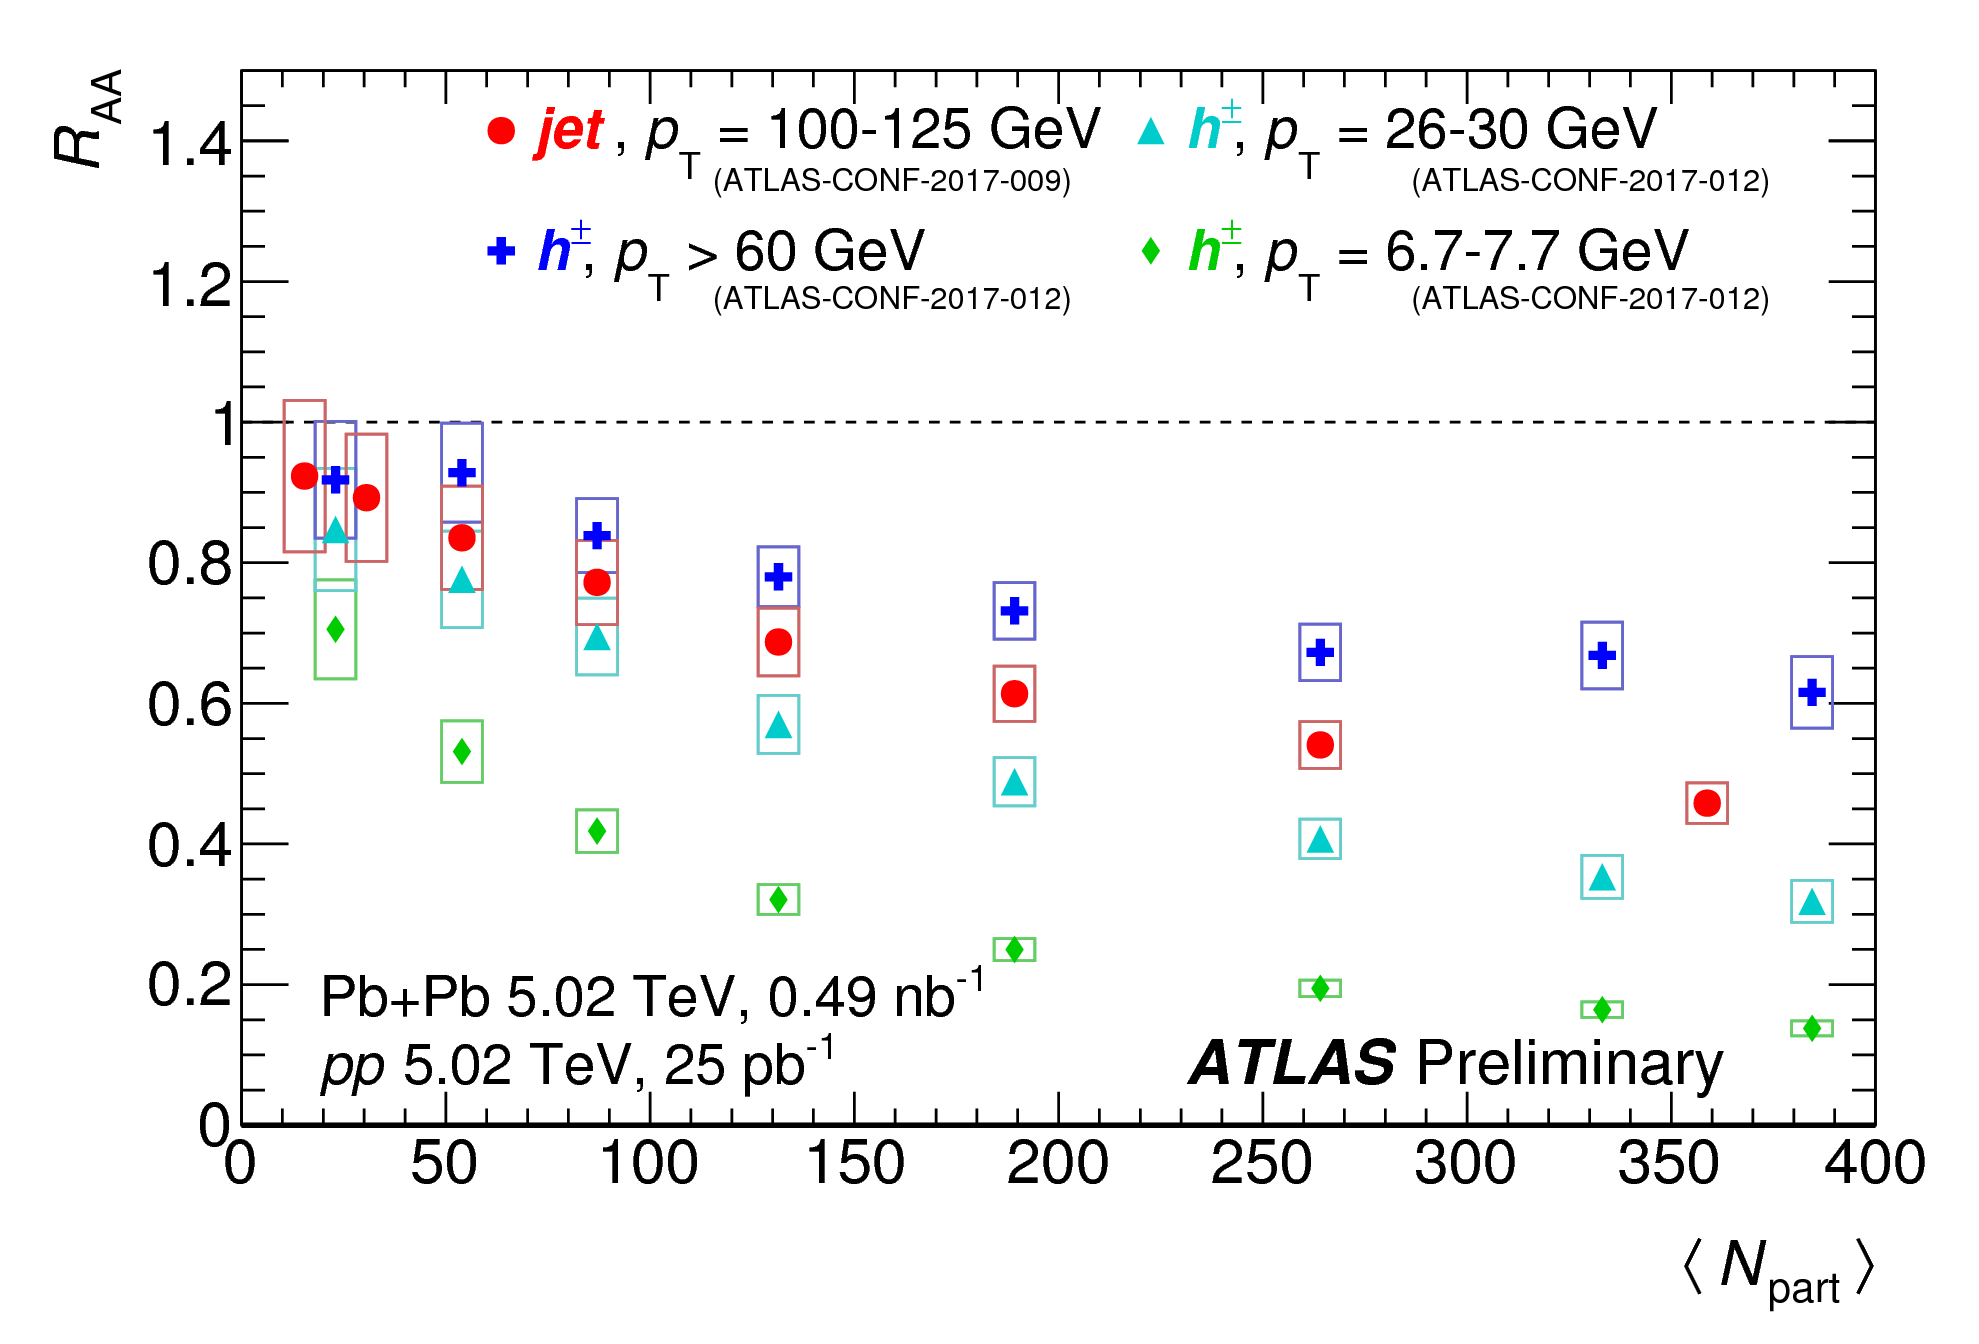 https://atlas.web.cern.ch/Atlas/GROUPS/PHYSICS/CombinedSummaryPlots/HION/ATLAS_HION_Summary_Raa_03/ATLAS_HION_Summary_Raa_03.png